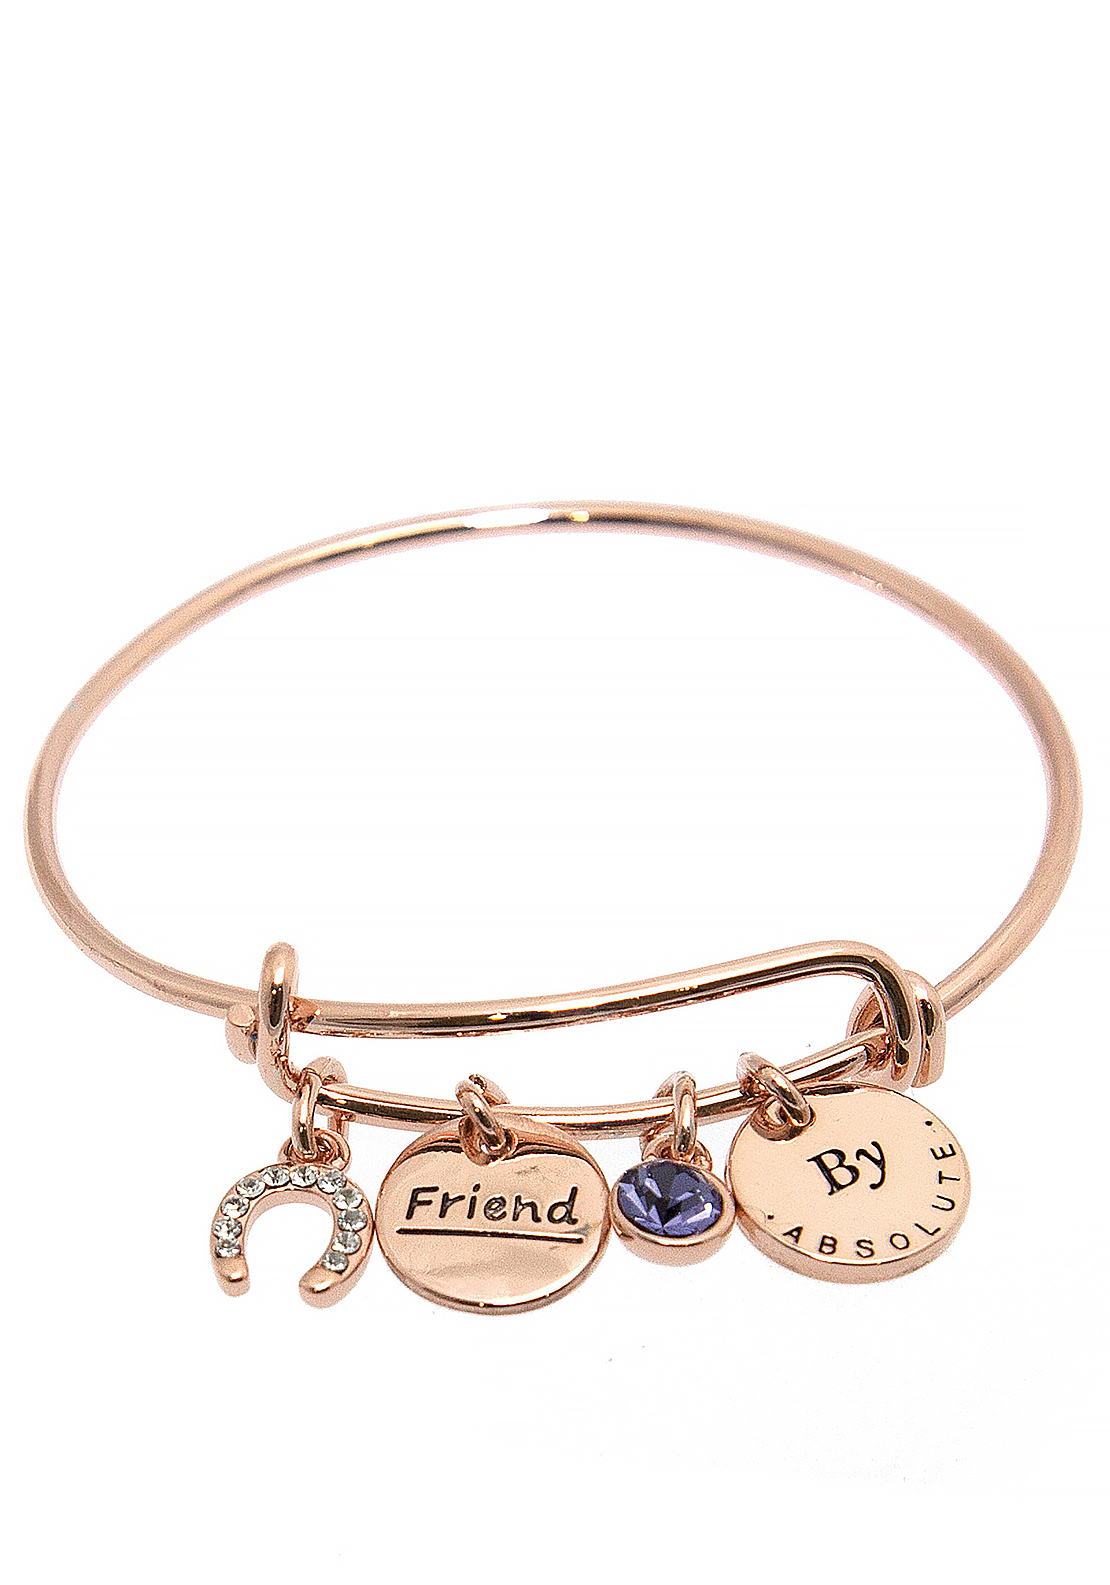 Absolute Jewellery Girls Friend Charm Bangle, Rose Gold